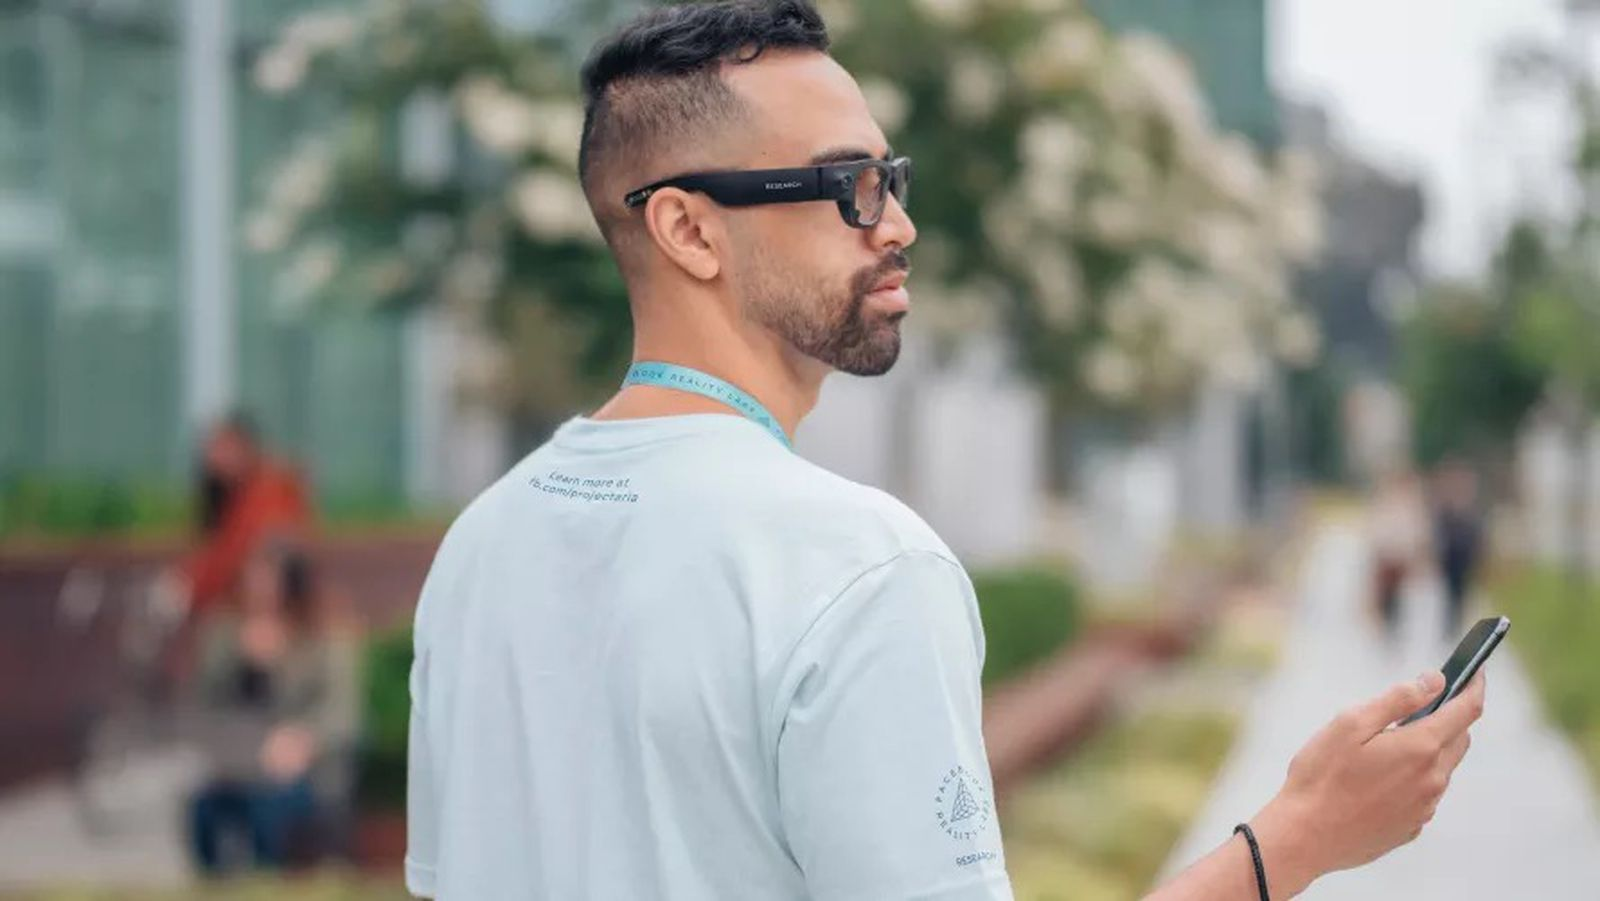 photo of Facebook Weighing Up Legality of Facial Recognition in Upcoming Smart Glasses image